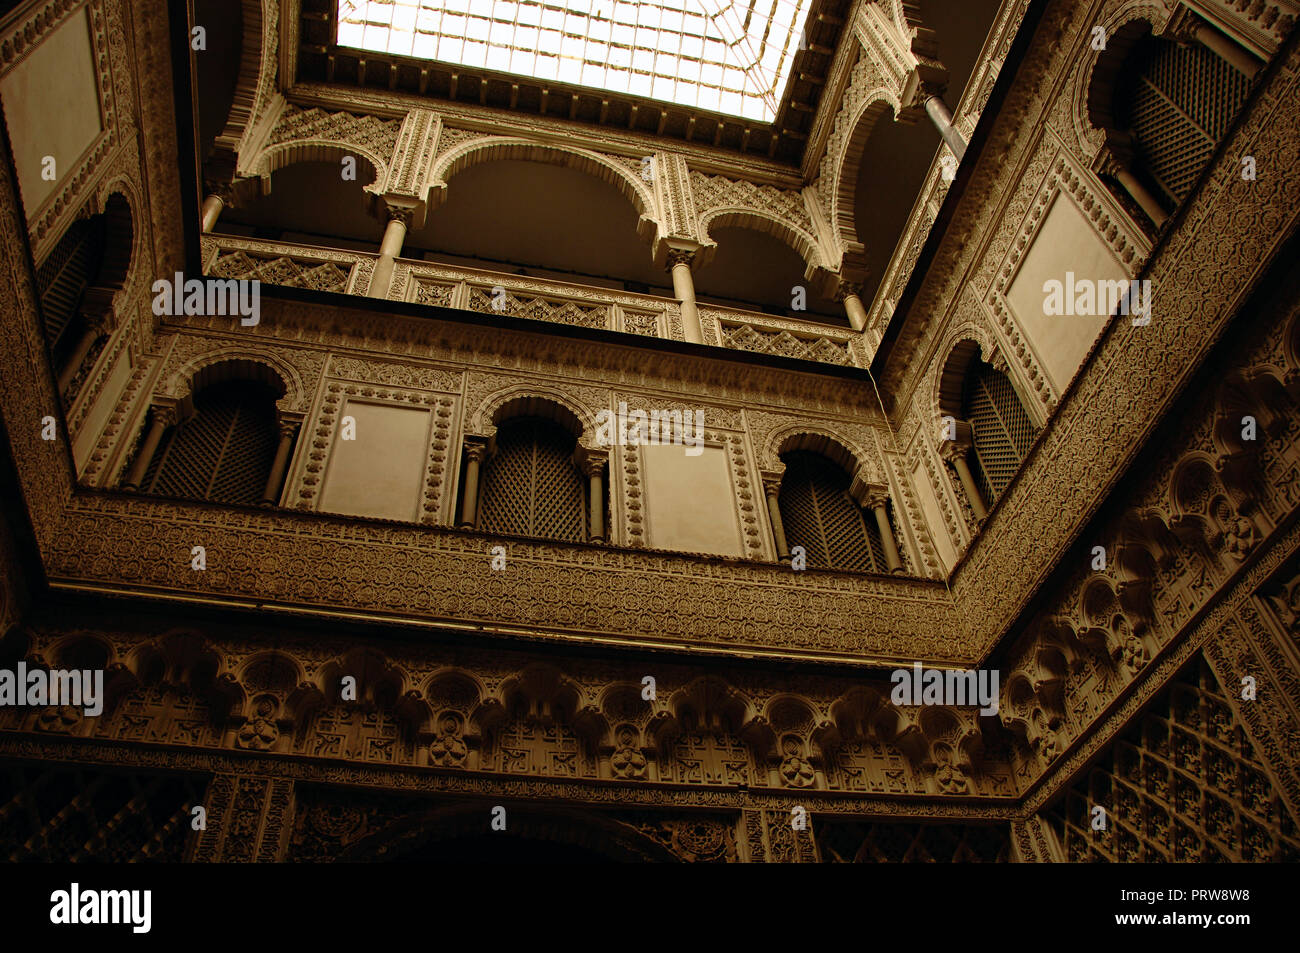 Spain. Andalusia. Seville. The Alcazar of Seville (Royal Alcazars). Dolls Courtyard, architectural detail. Mudejar style. It was designed to organise the rooms of the Palace private area, 14th century, and renovated between 1847 and 1855. - Stock Image